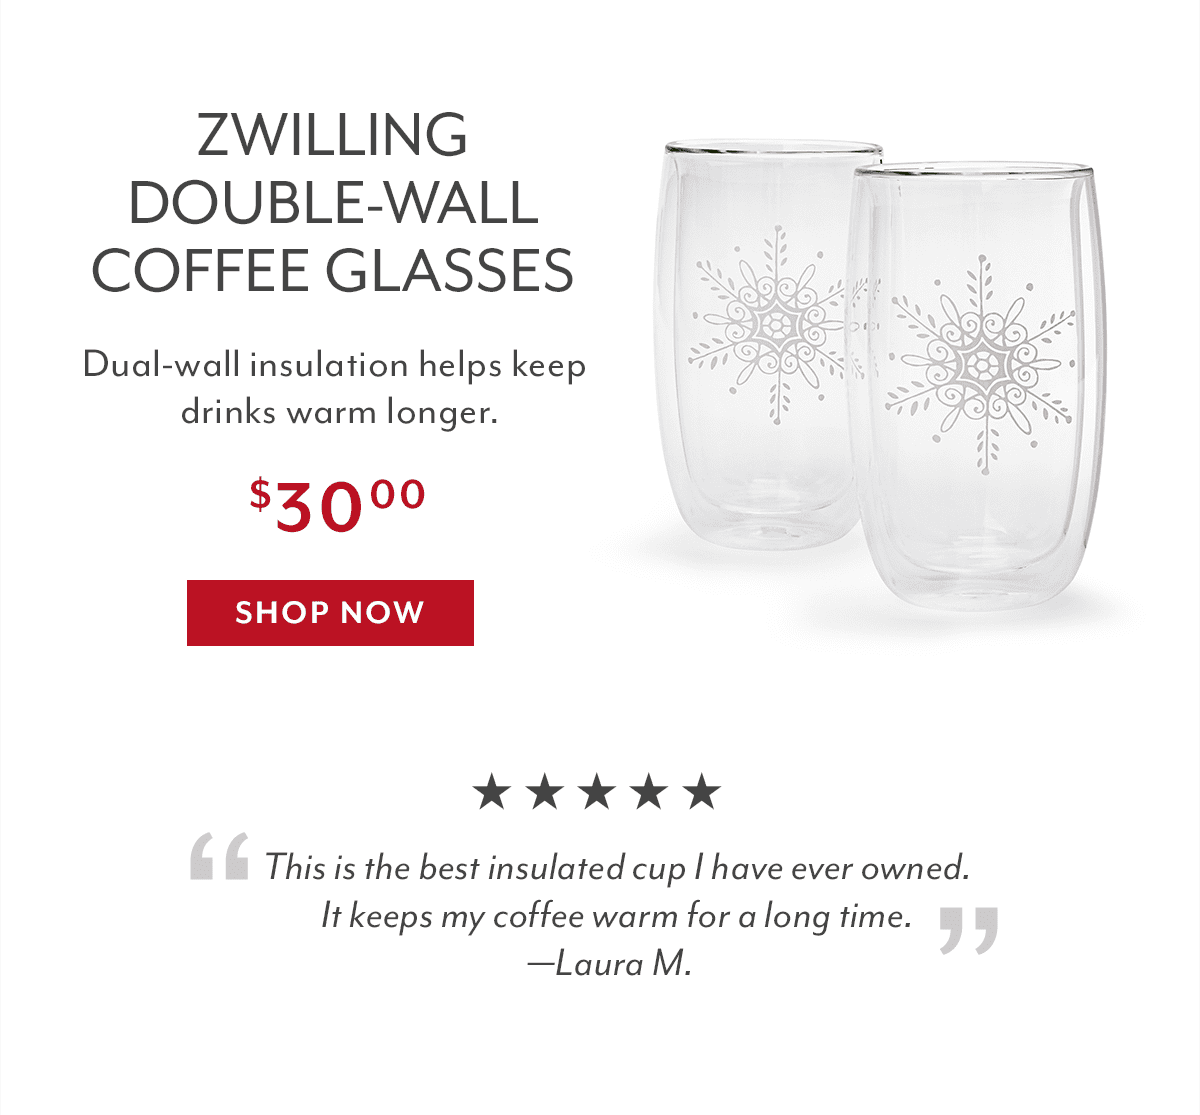 Zwilling J.A. Henckels Snowflake Double-Wall